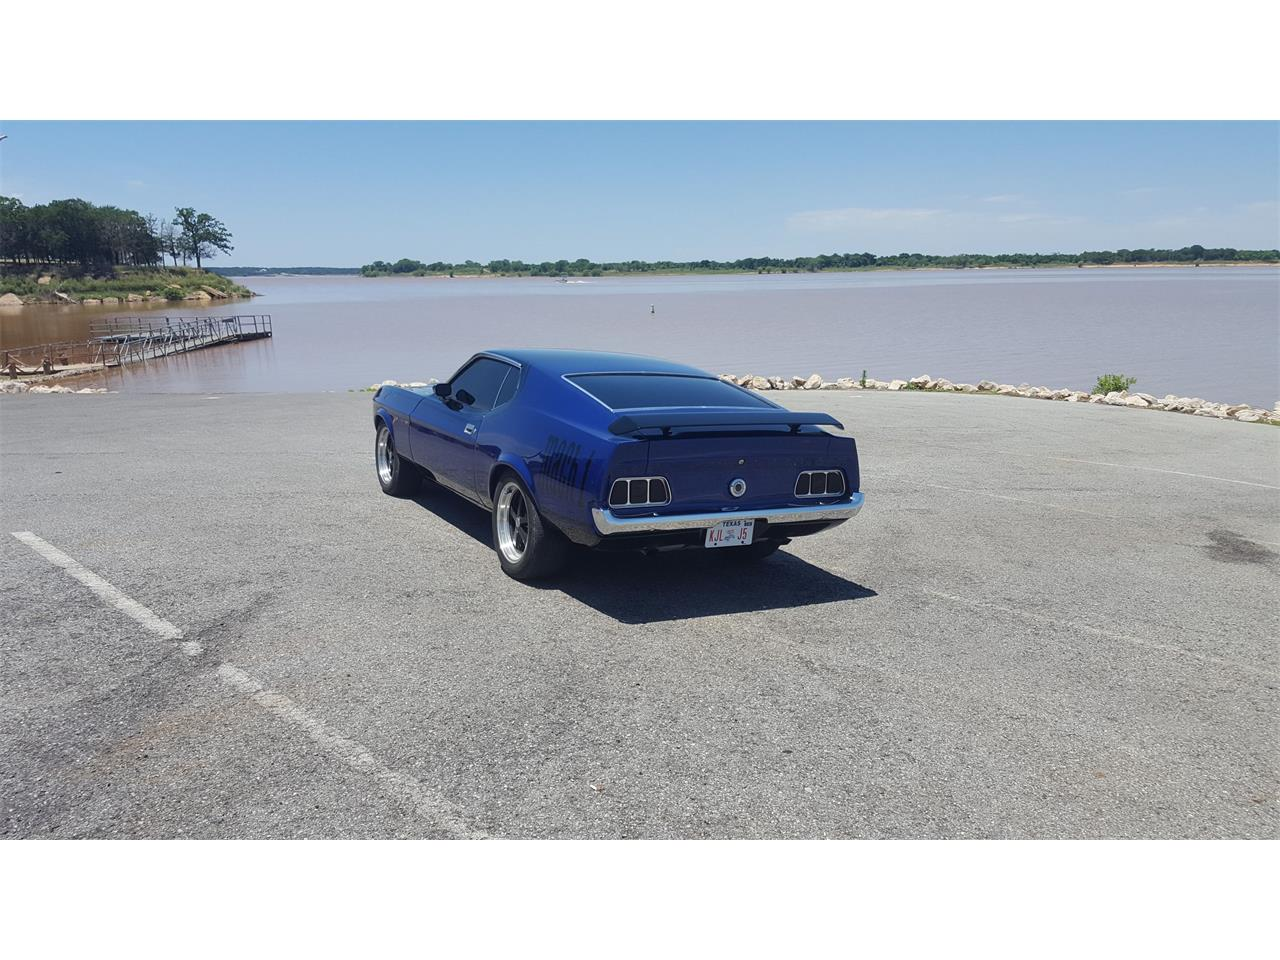 Large Picture of 1973 Ford Mustang Mach 1 located in Gordonville Texas - $45,000.00 Offered by a Private Seller - LBYV